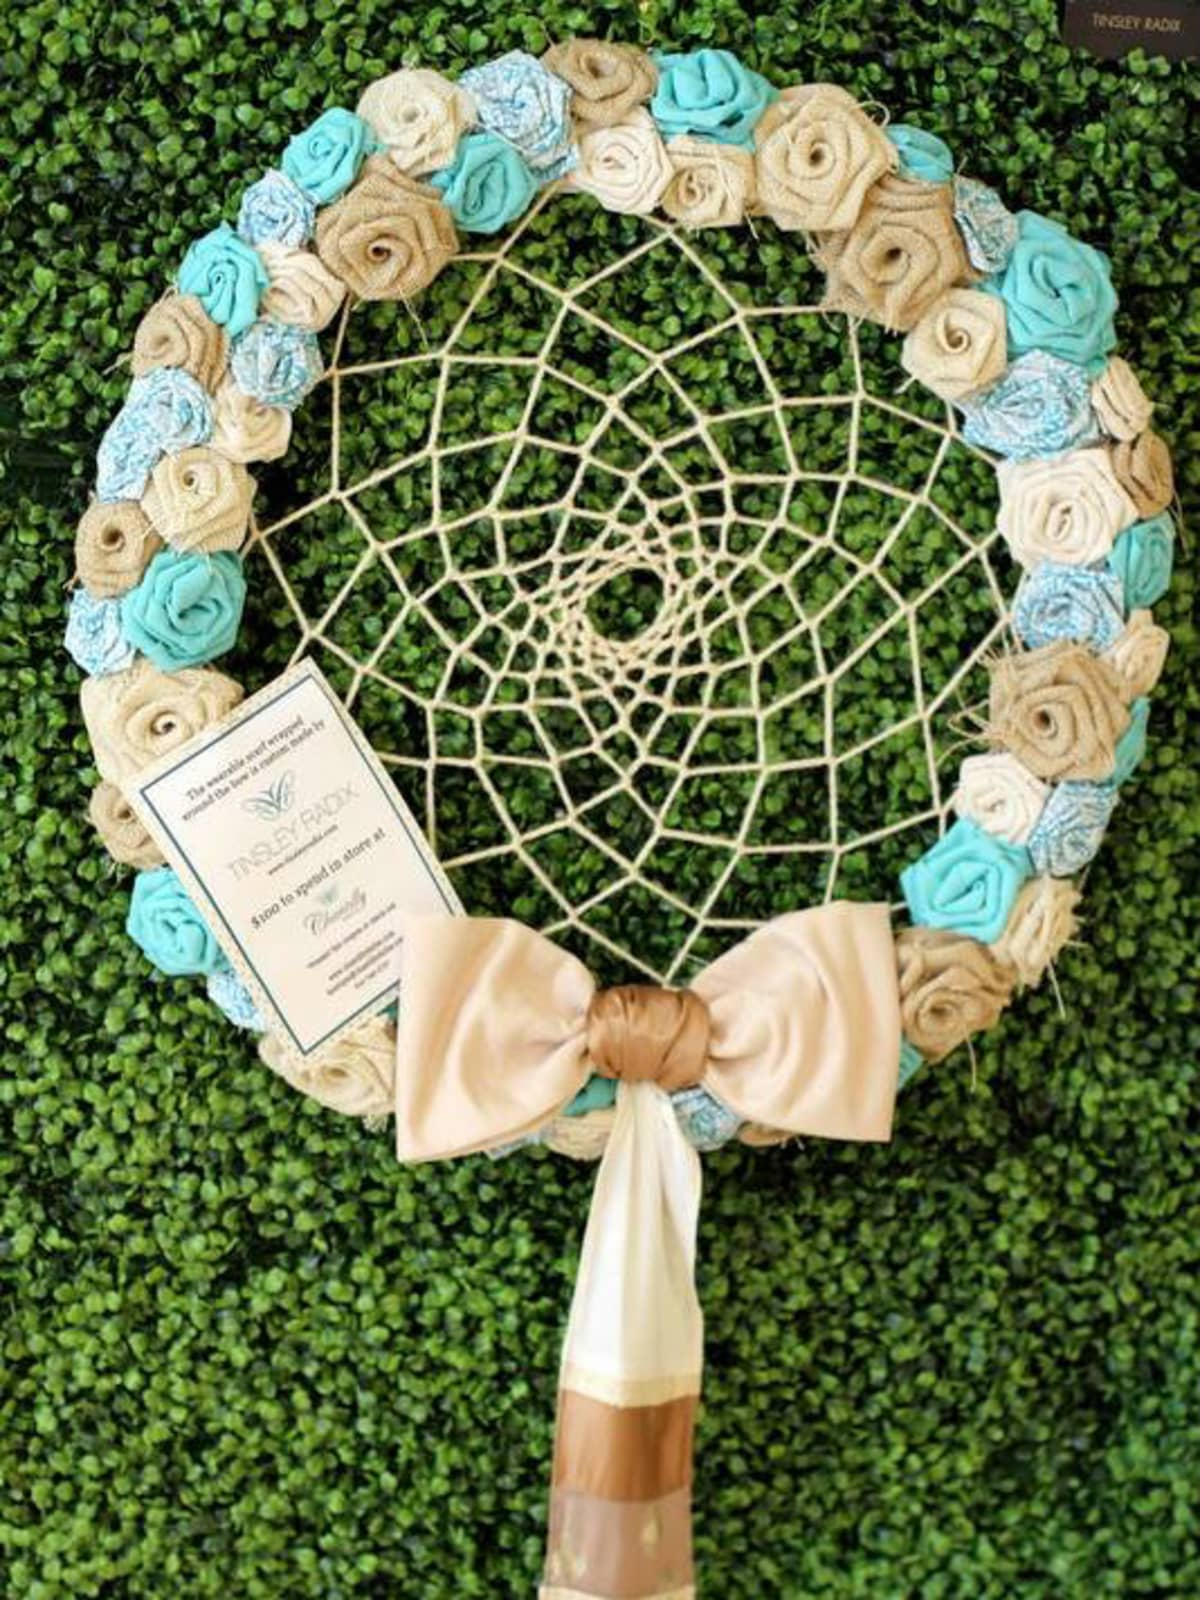 Tinsley Radix wreath at DIFFA 2014